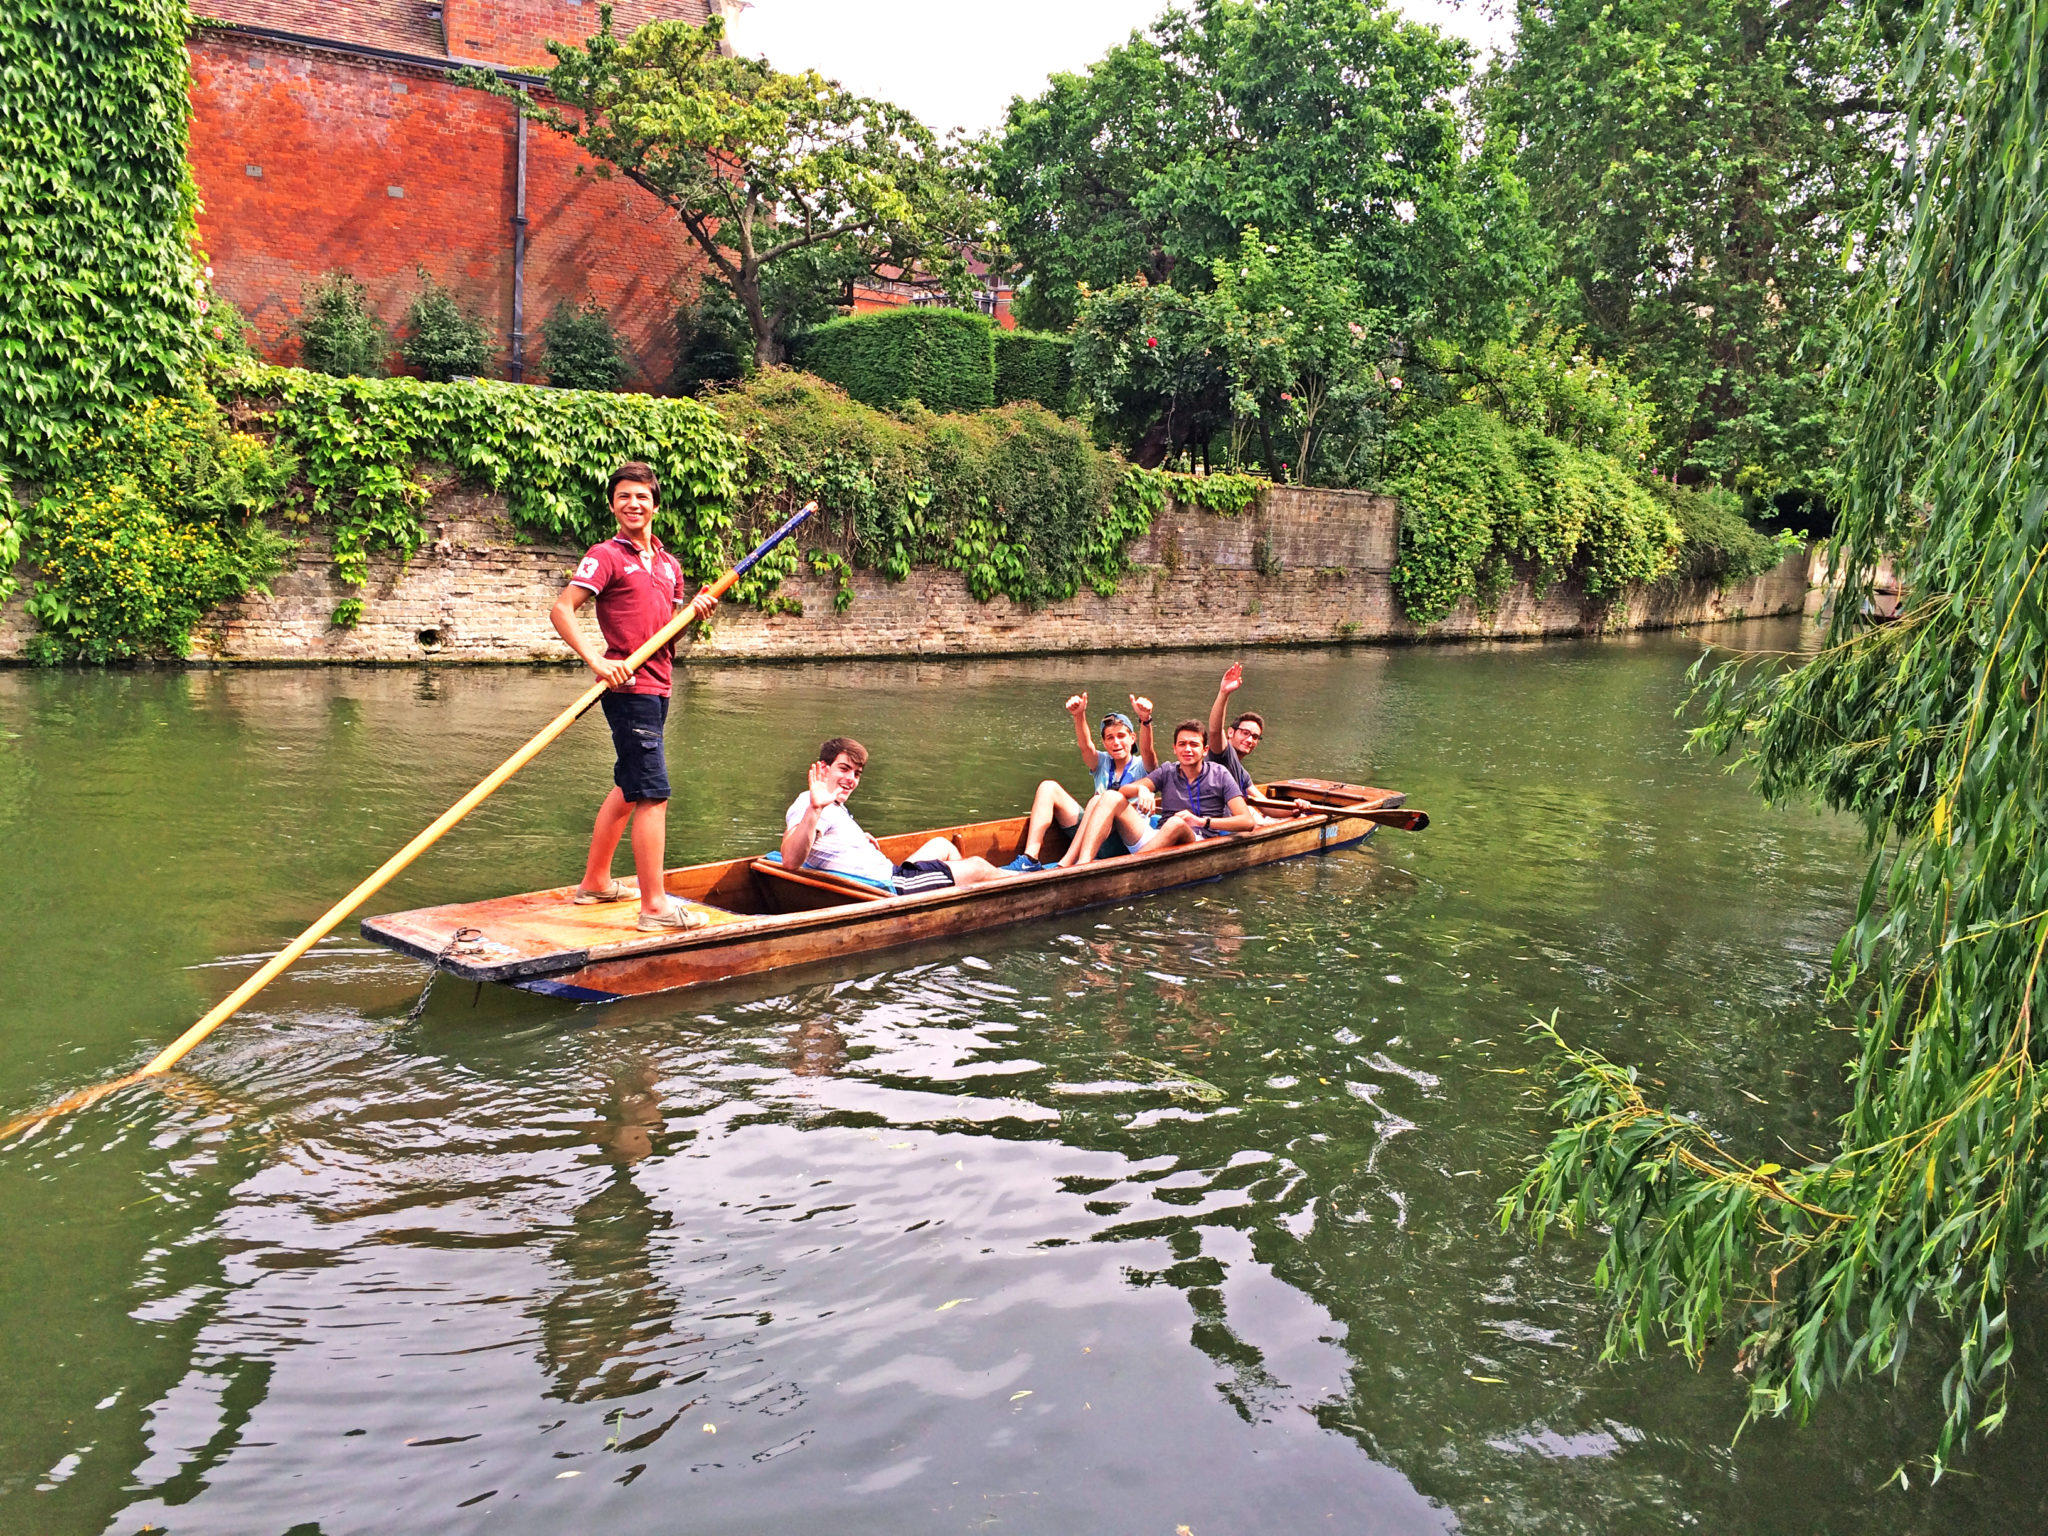 A group of students punting on the River Cam. One student stands at the back of the punt holding a pole. The others are sat in the boat, waving at the camera.